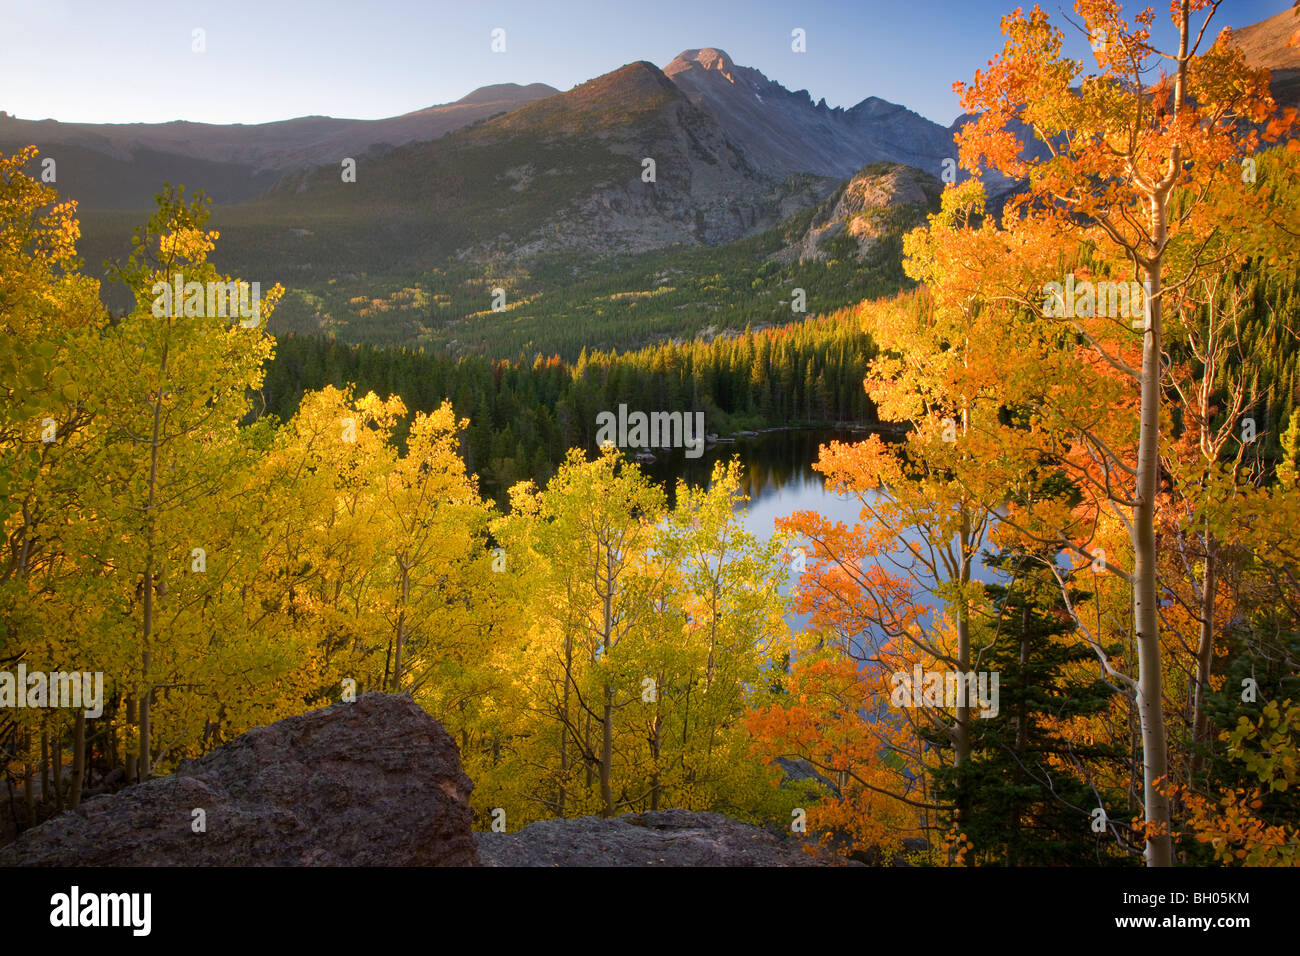 Herbstfarben am Bear Lake, Rocky Mountain National Park, Colorado. Stockbild